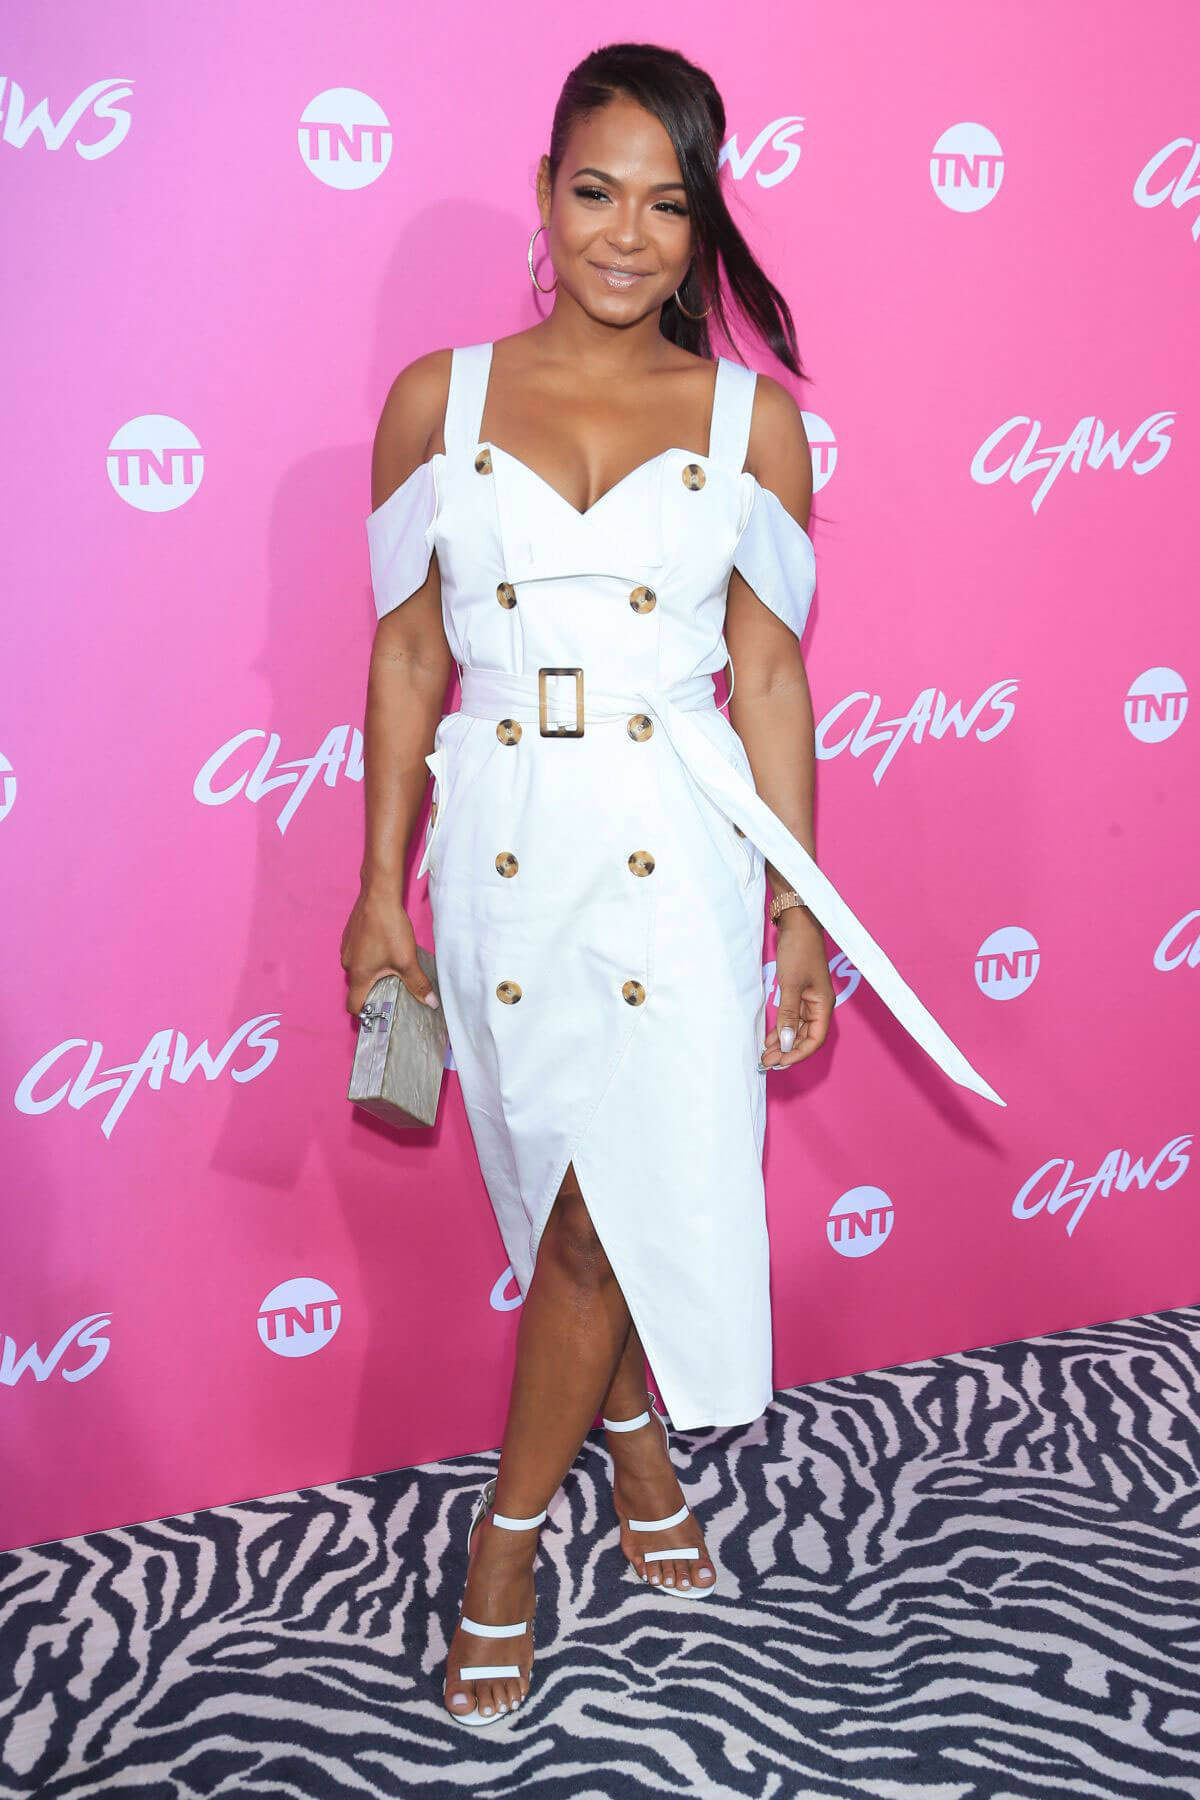 Christina Milian at Claws Premiere in Los Angeles